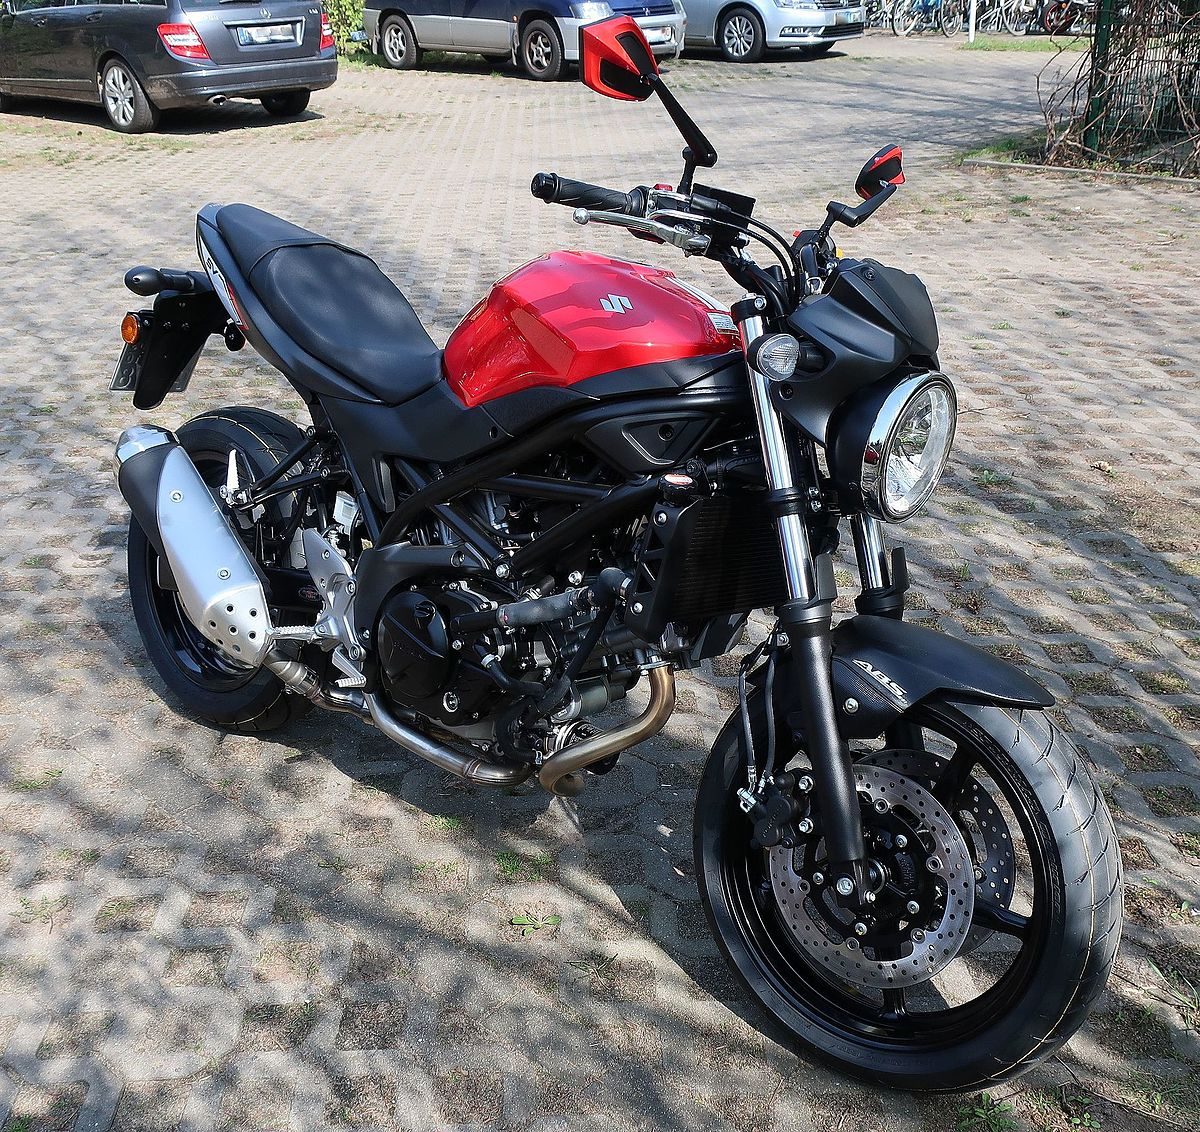 suzuki sv 650 wikipedia. Black Bedroom Furniture Sets. Home Design Ideas